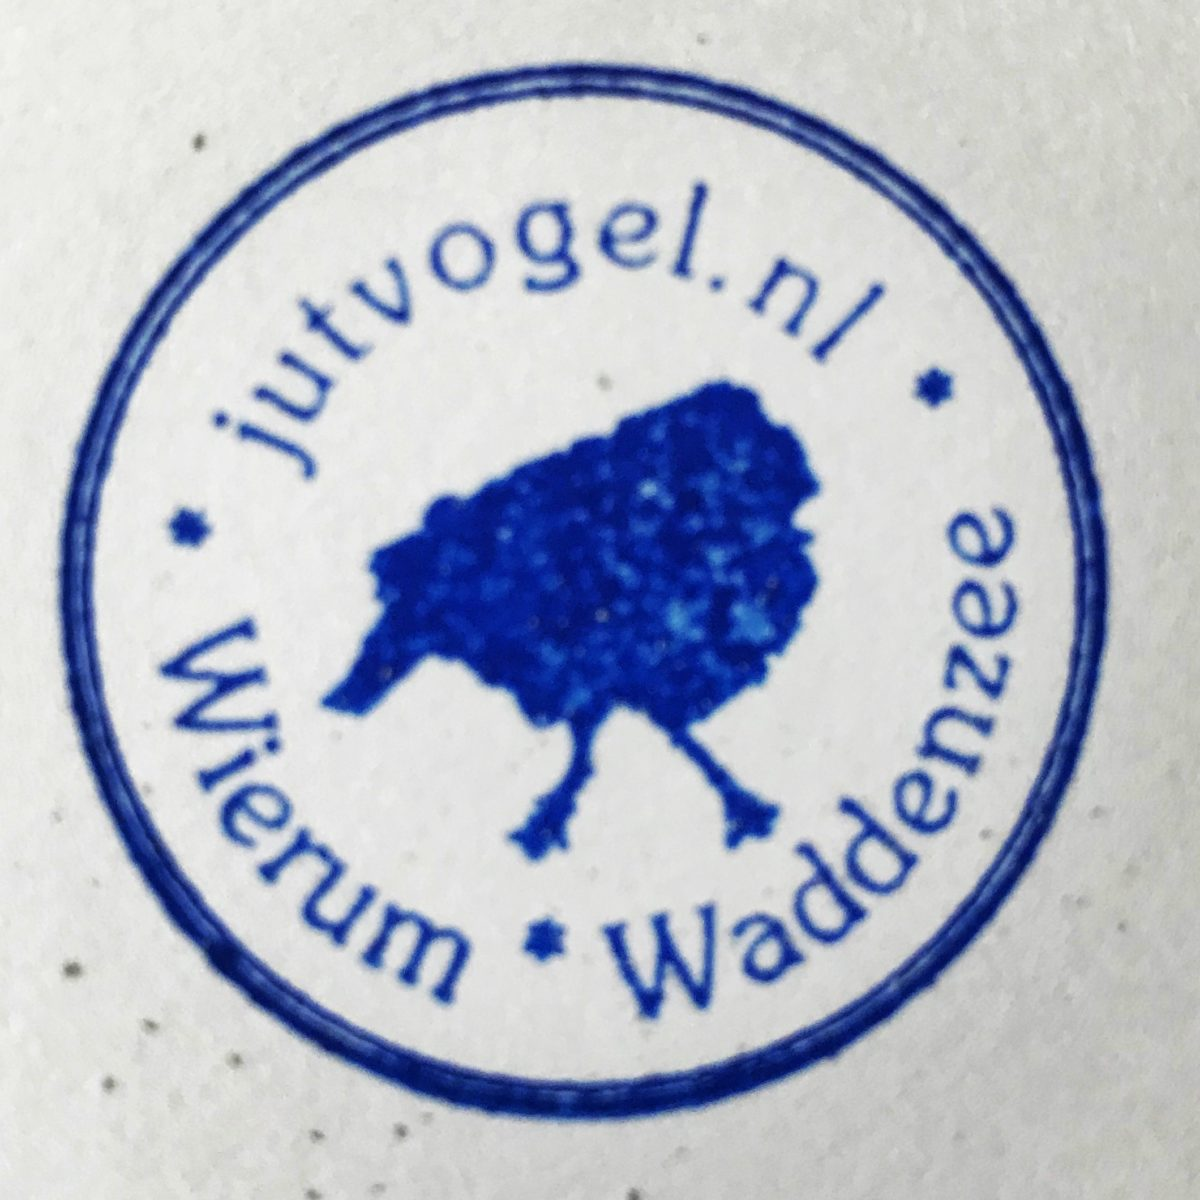 Jutvogelatelier in Wierum aan de Waddenzee